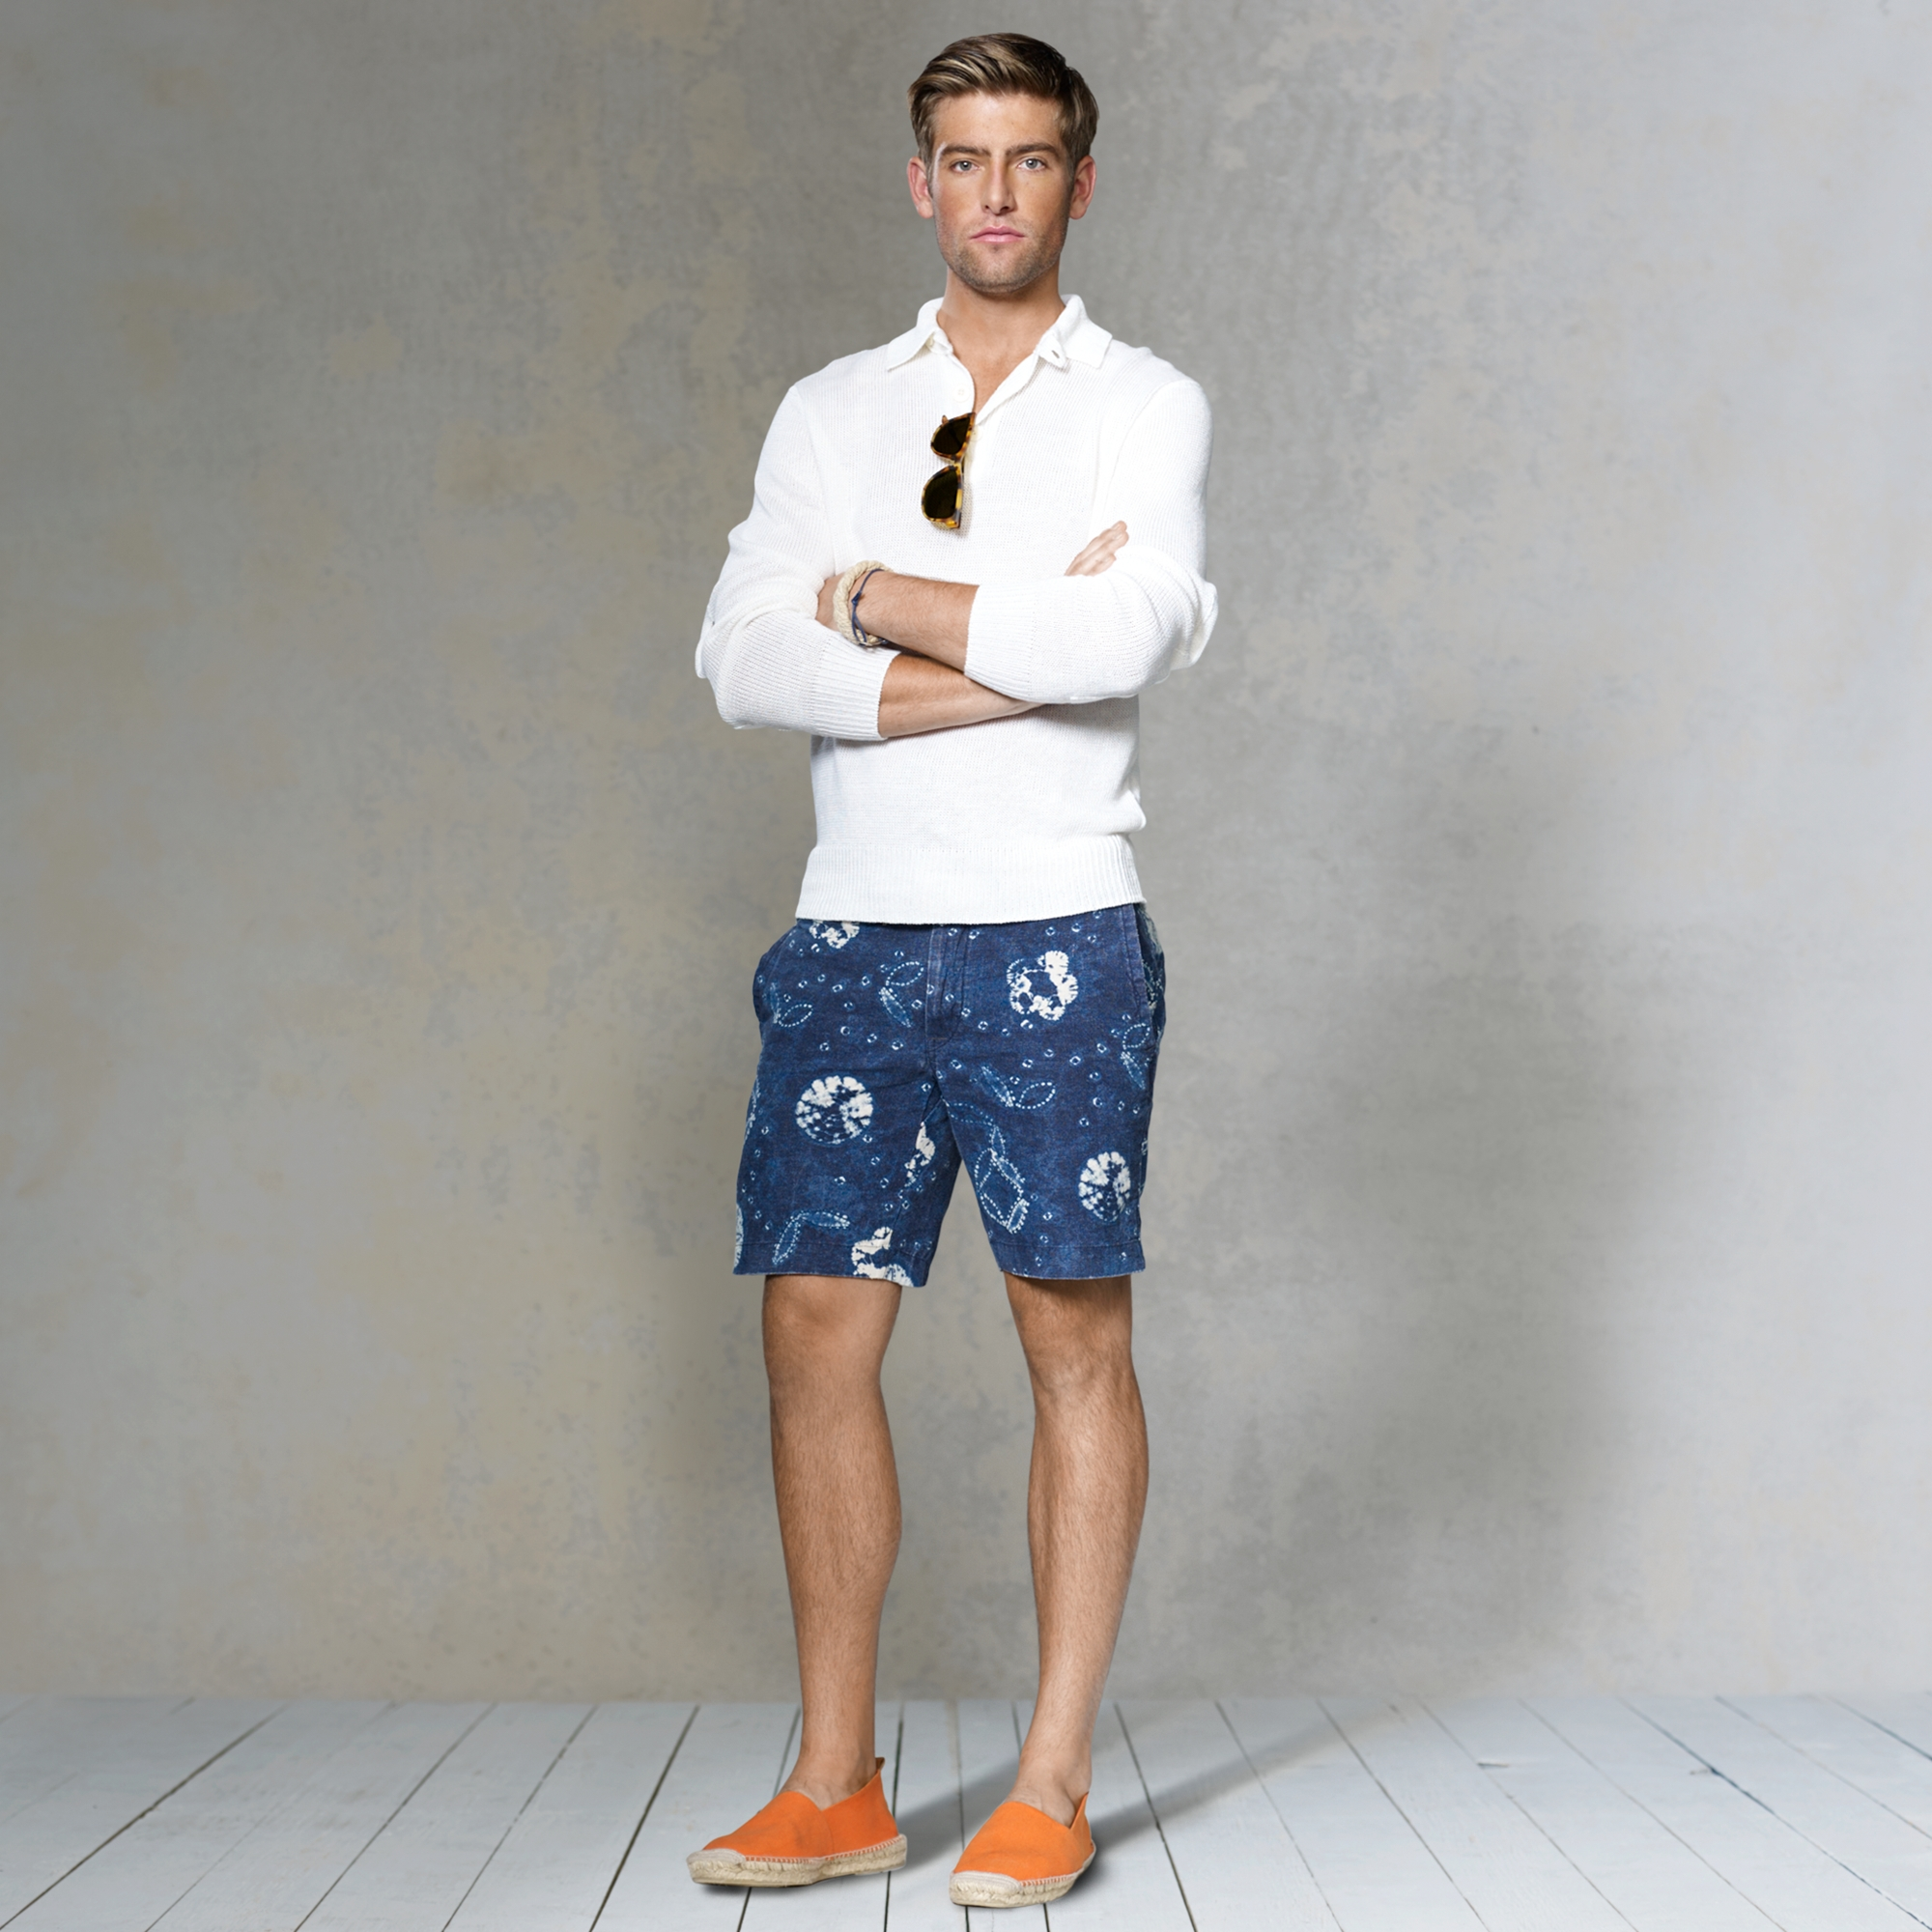 image of ralph lauren shirt and shorts